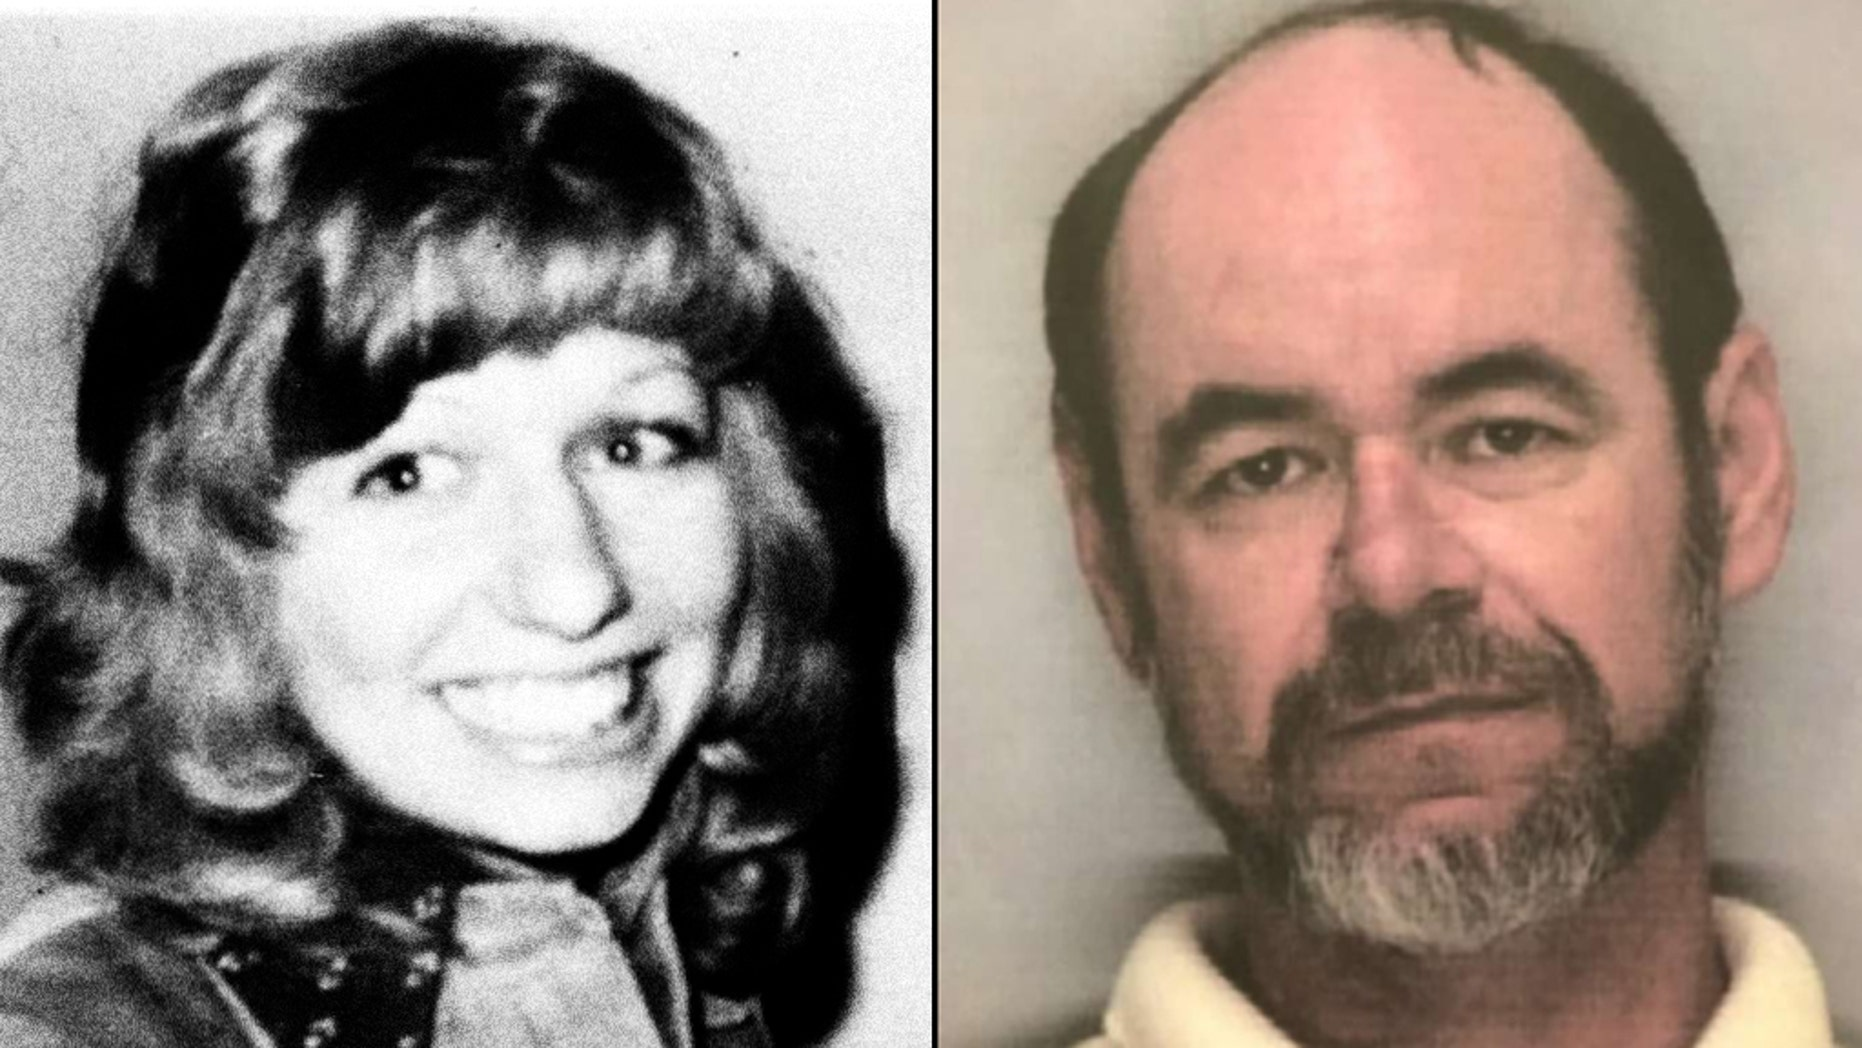 Northern California authorities said Thursday that Steve Crawford (right), a suspect in the 1974 ritualistic church murder of 19-year-old Arlis Perry (left) apparently killed himself after detectives with a search warrant knocked on his door.